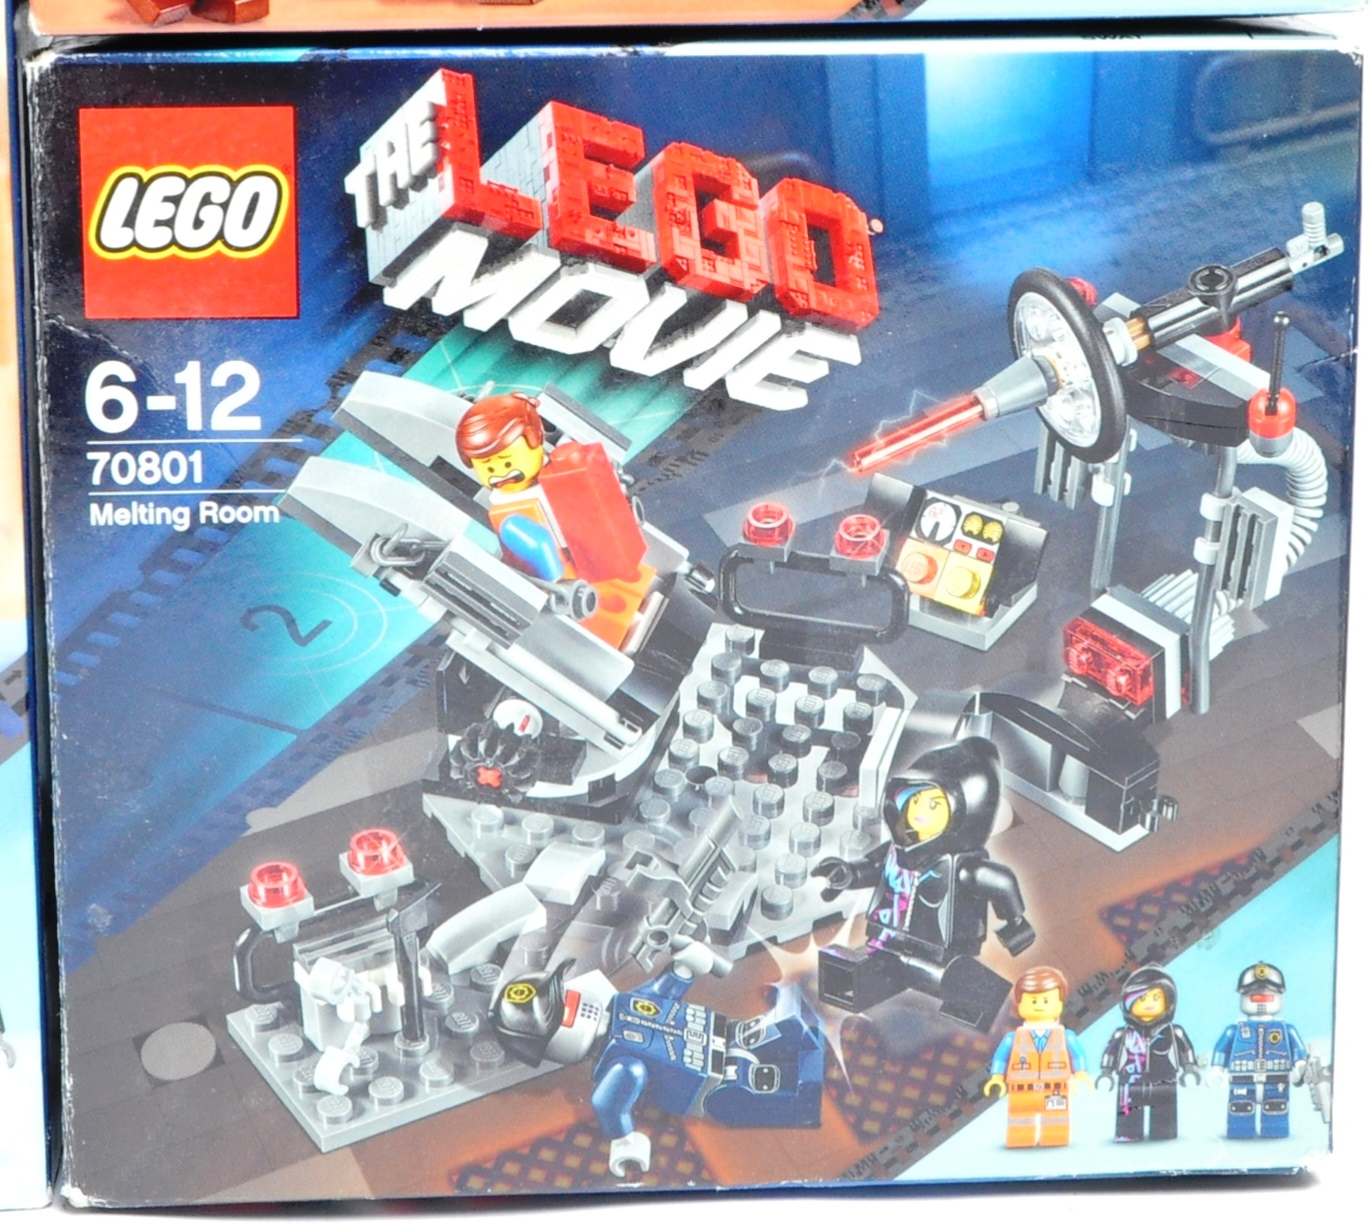 LEGO SETS - THE LEGO MOVIE - COLLECTION OF X7 LEGO MOVIE SETS - Image 7 of 17